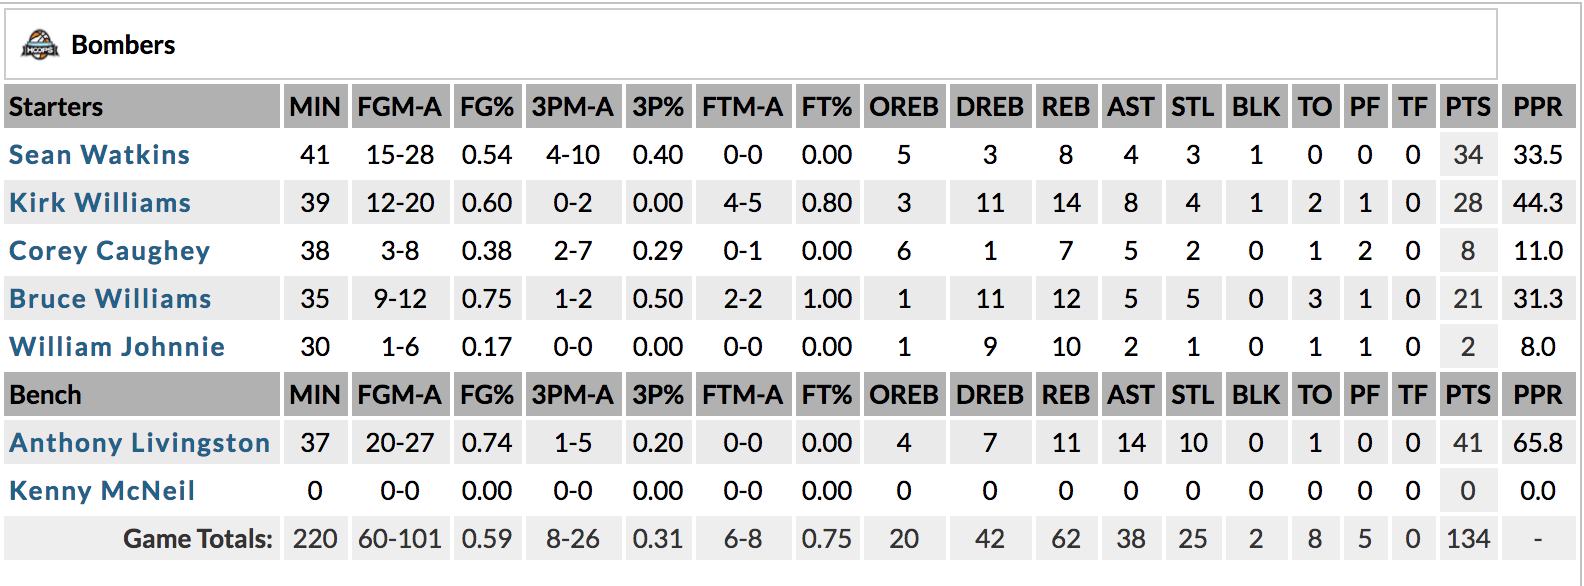 Anthony Livingston dropped a quadruple-double in Green Valley last week